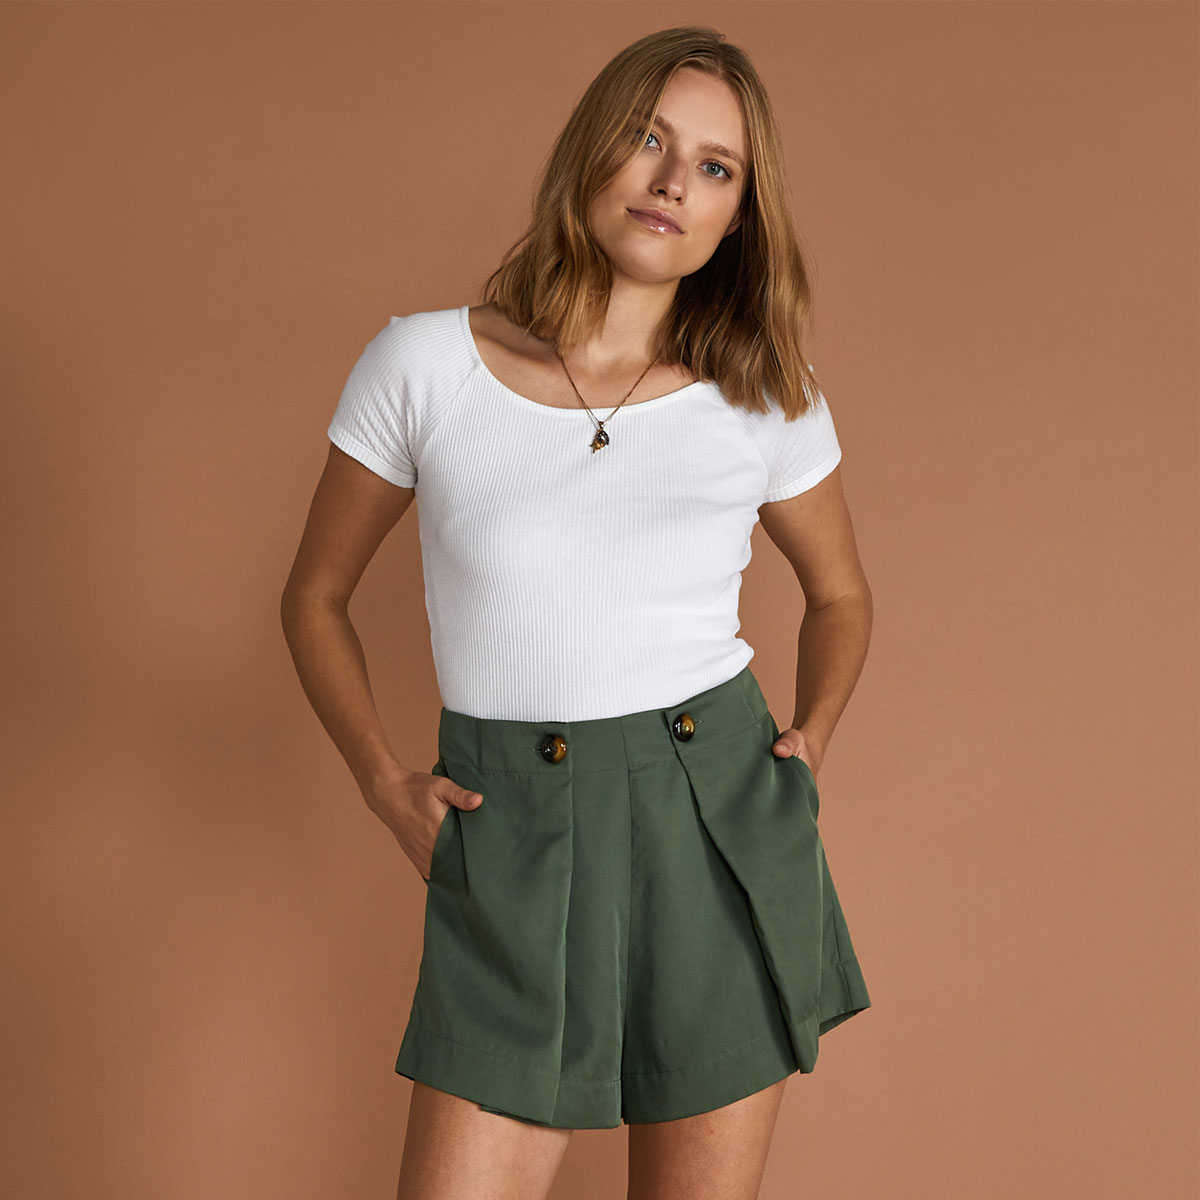 Sancia Eveline Short in Panama Green on woman